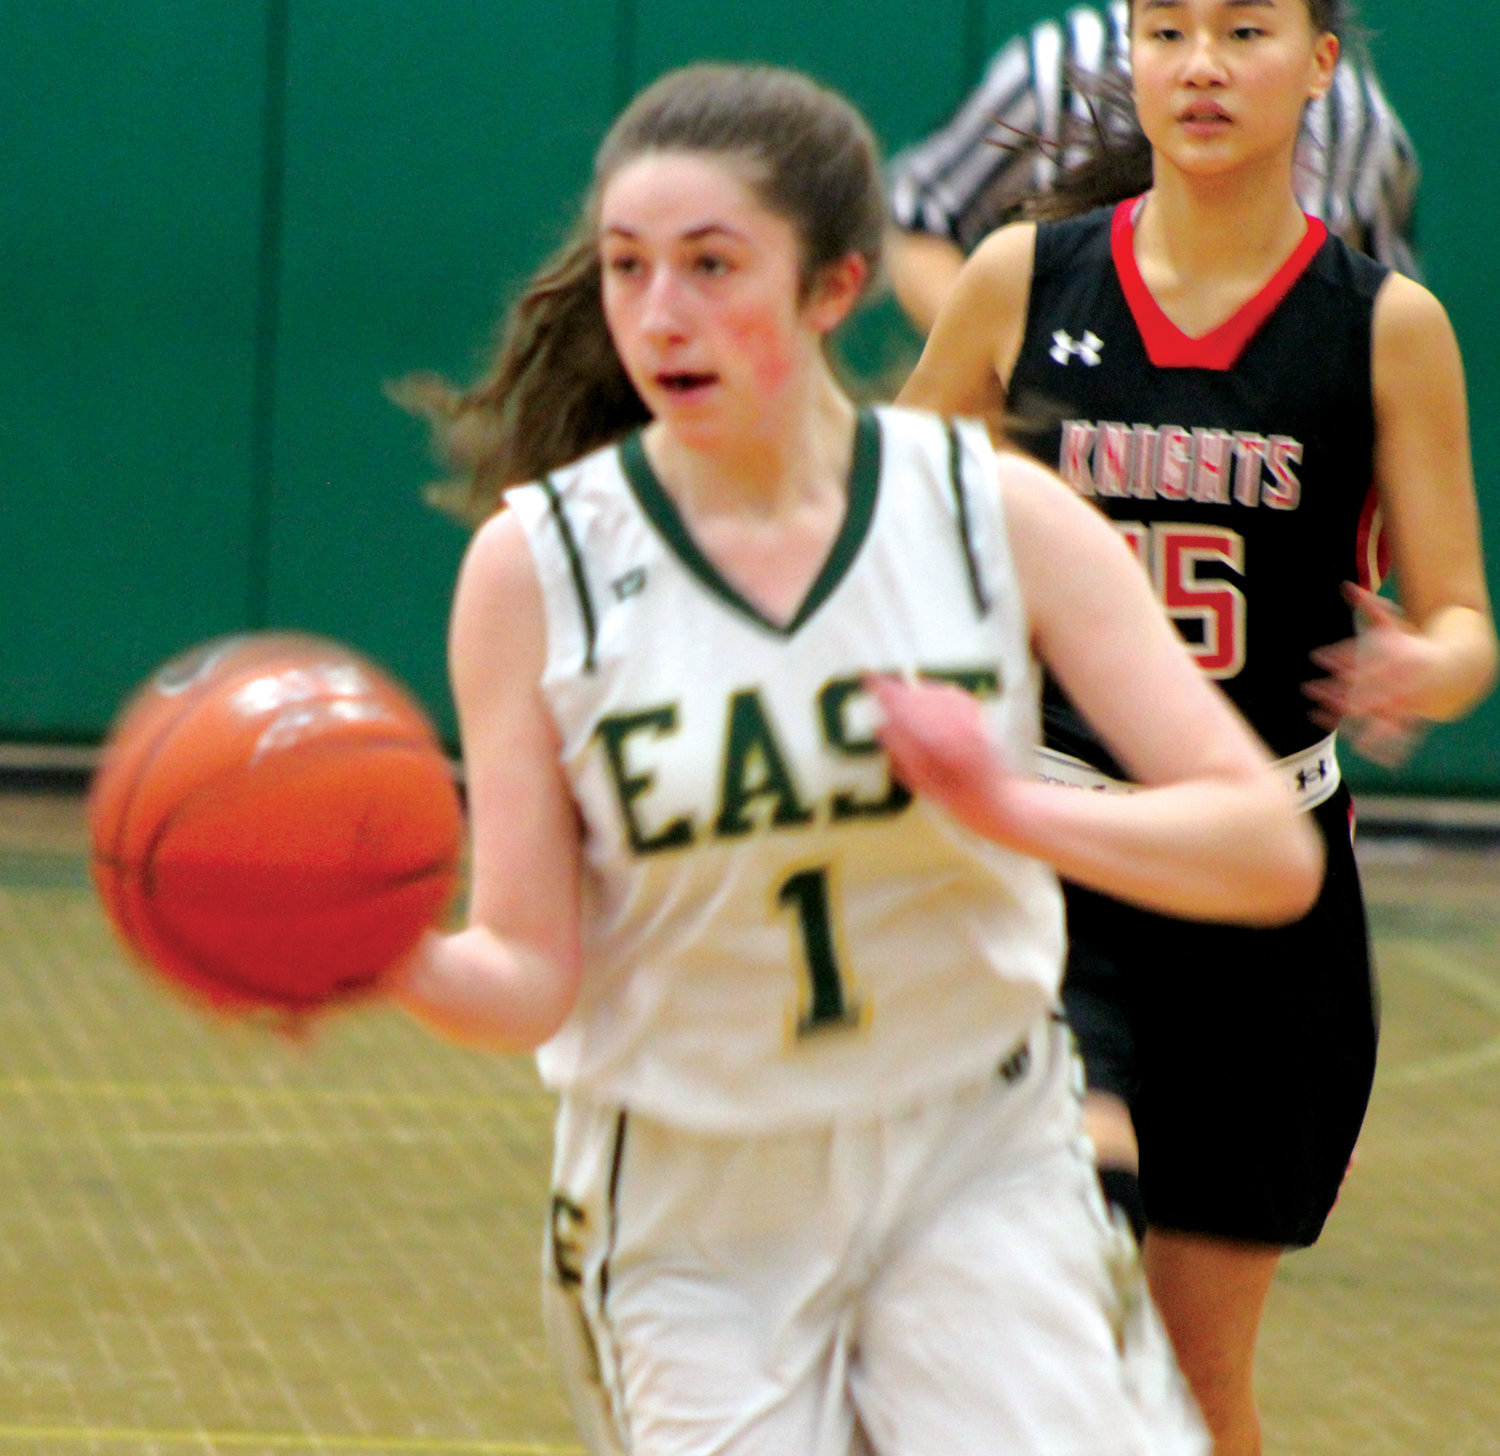 UP THE COURT: Cranston East's Kendra Dionizio dribbles up the court against PCD last week.